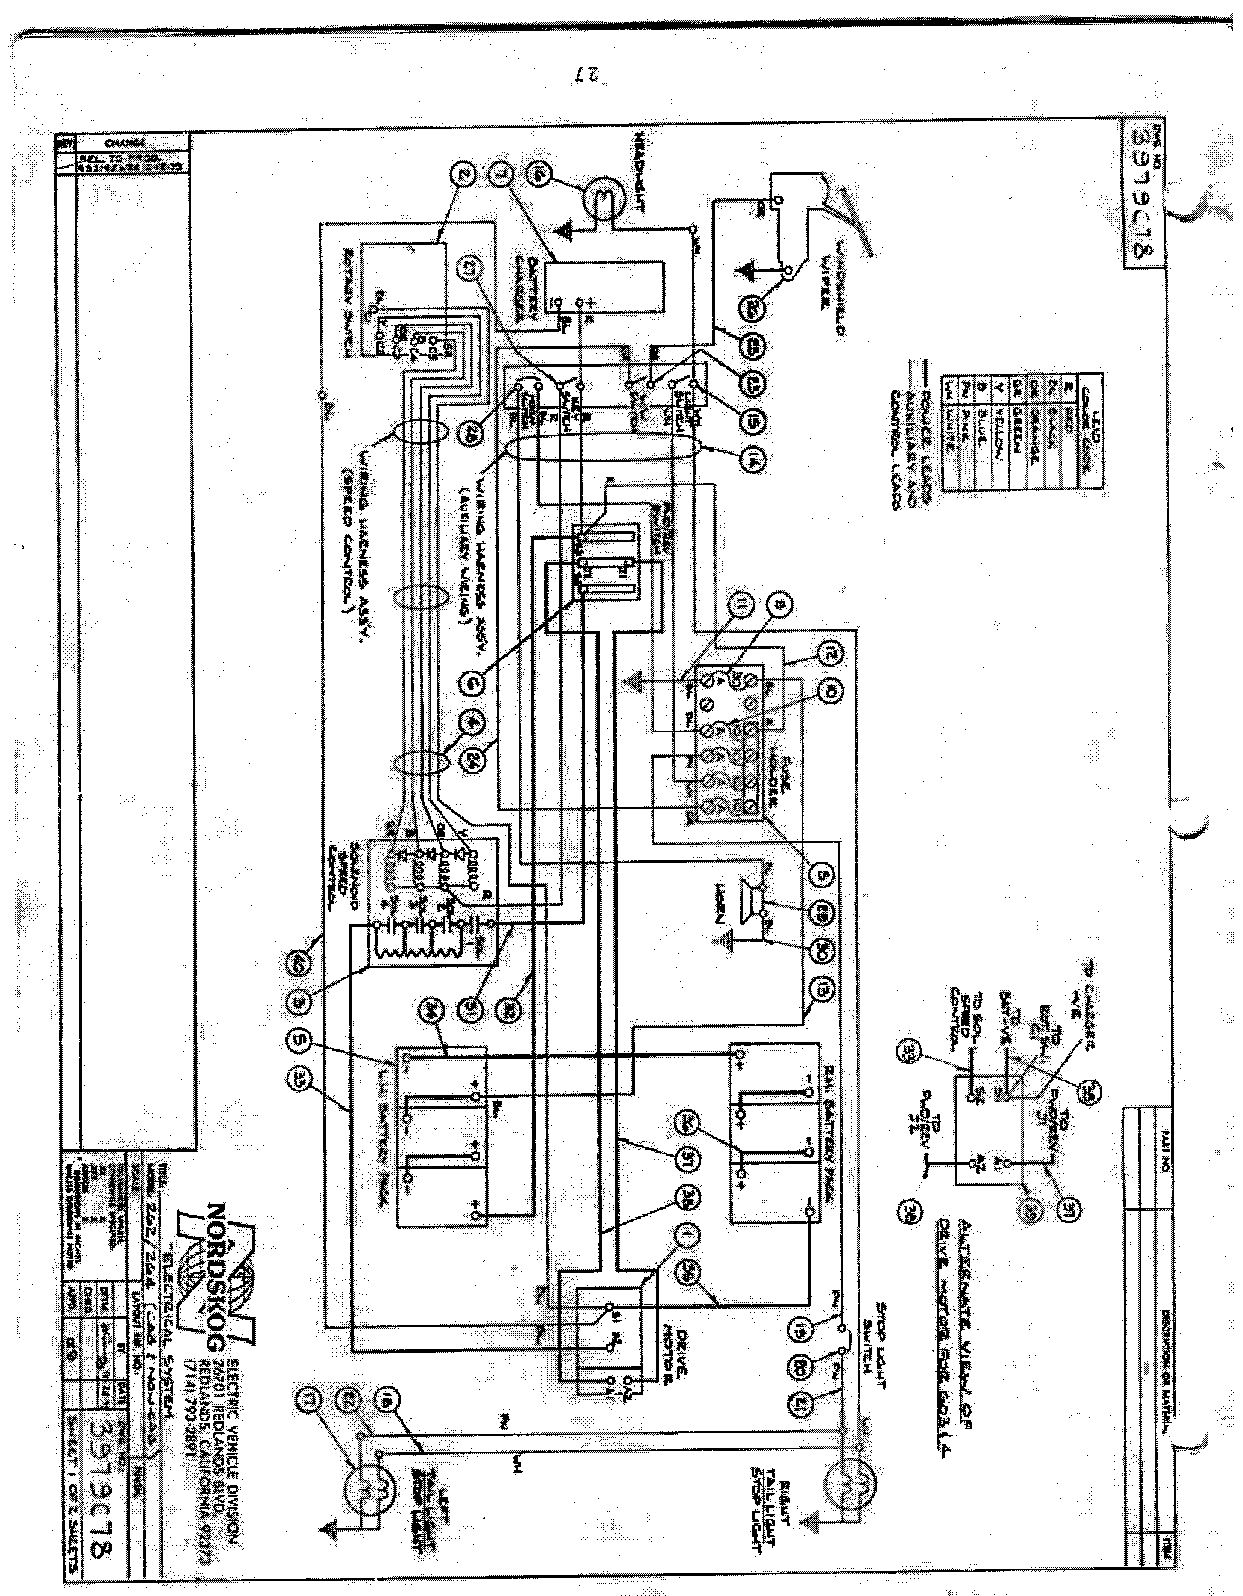 Nordskog262_264 vintagegolfcartparts com westinghouse golf cart wiring diagram at bakdesigns.co